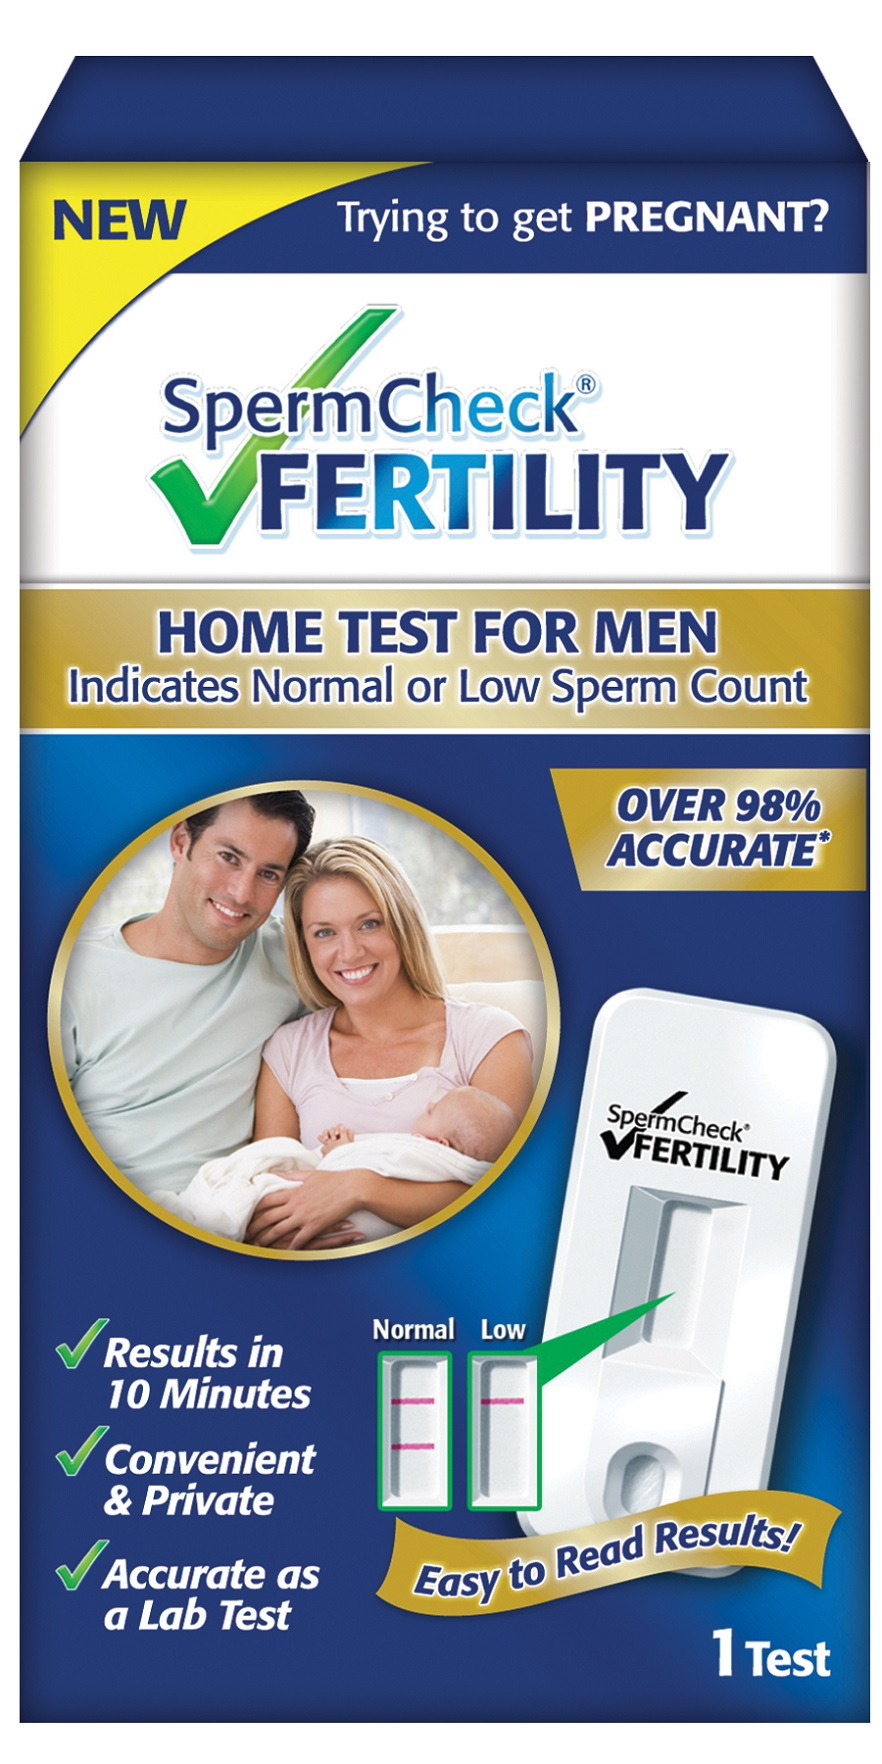 SpermCheck_Fertility-fnl-US